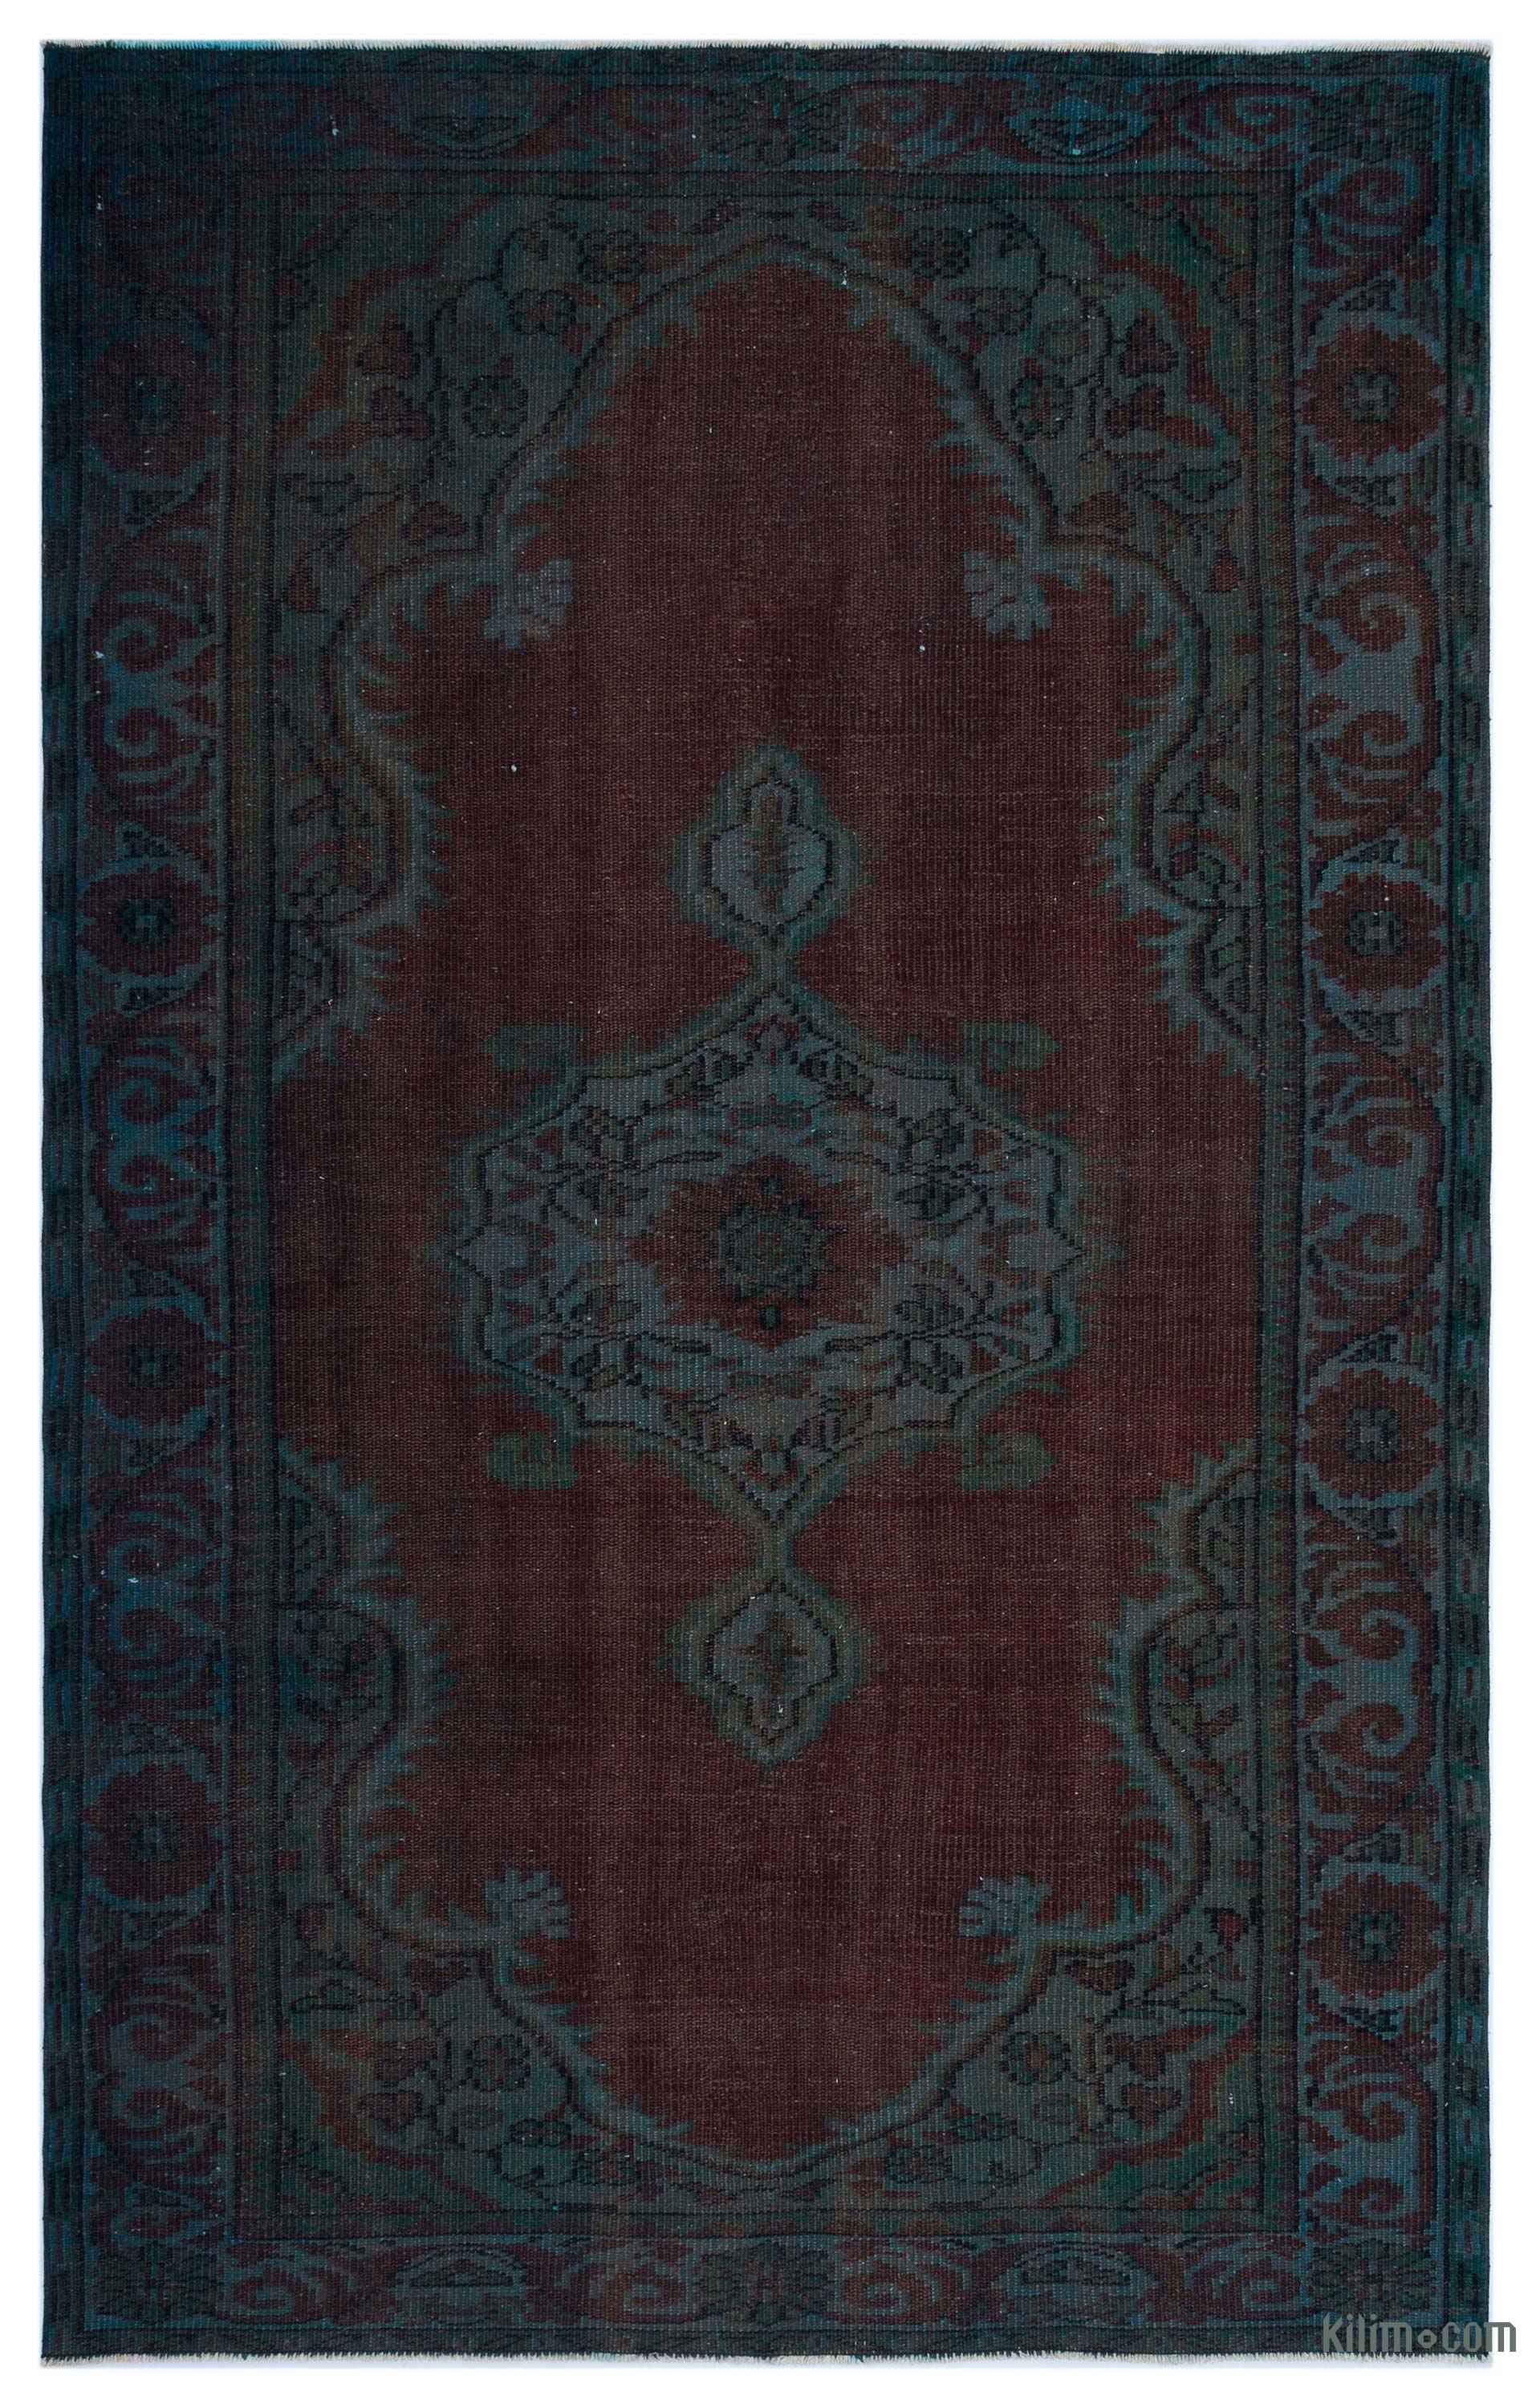 Pin By Karen Daniels On Vintage Hand Knotted Rugs Vintage Area Rugs Rugs Area Rugs